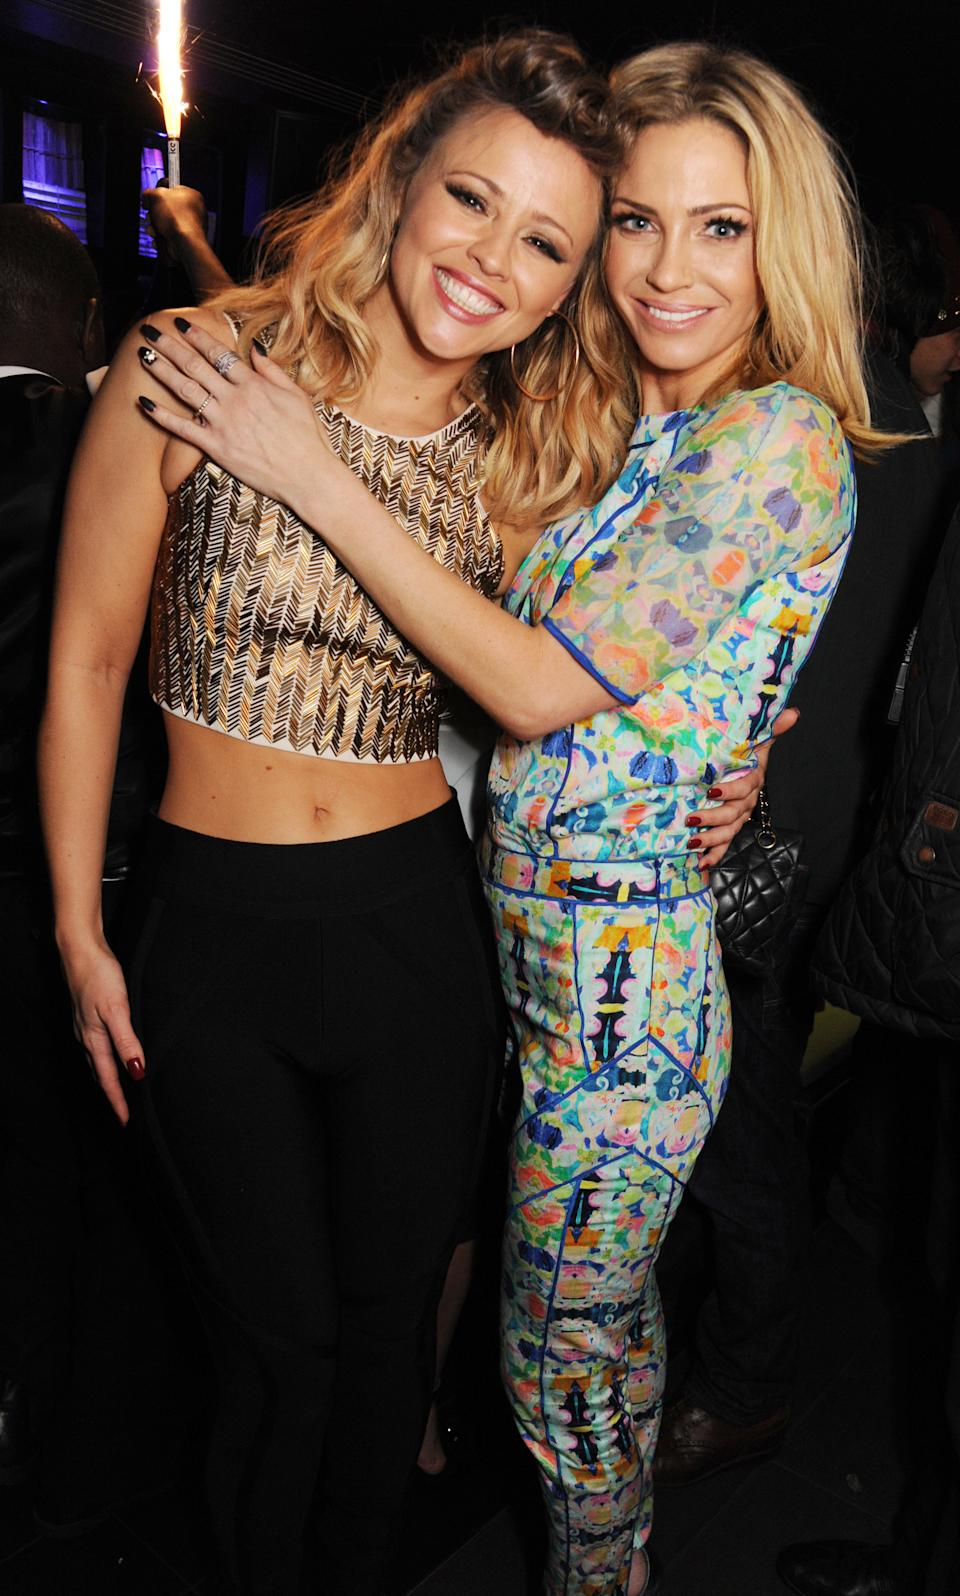 LONDON, ENGLAND - MARCH 02:  (EMBARGOED FOR PUBLICATION IN UK TABLOID NEWSPAPERS UNTIL 48 HOURS AFTER CREATE DATE AND TIME. MANDATORY CREDIT PHOTO BY DAVE M. BENETT/GETTY IMAGES REQUIRED) (L-R) Kimberley Walsh and Sarah Harding of Girls Aloud attend their London Ten - The Hits Tour after party at Whisky Mist Club on March 02, 2013 in London, England. (Photo by Dave M. Benett/Getty Images)